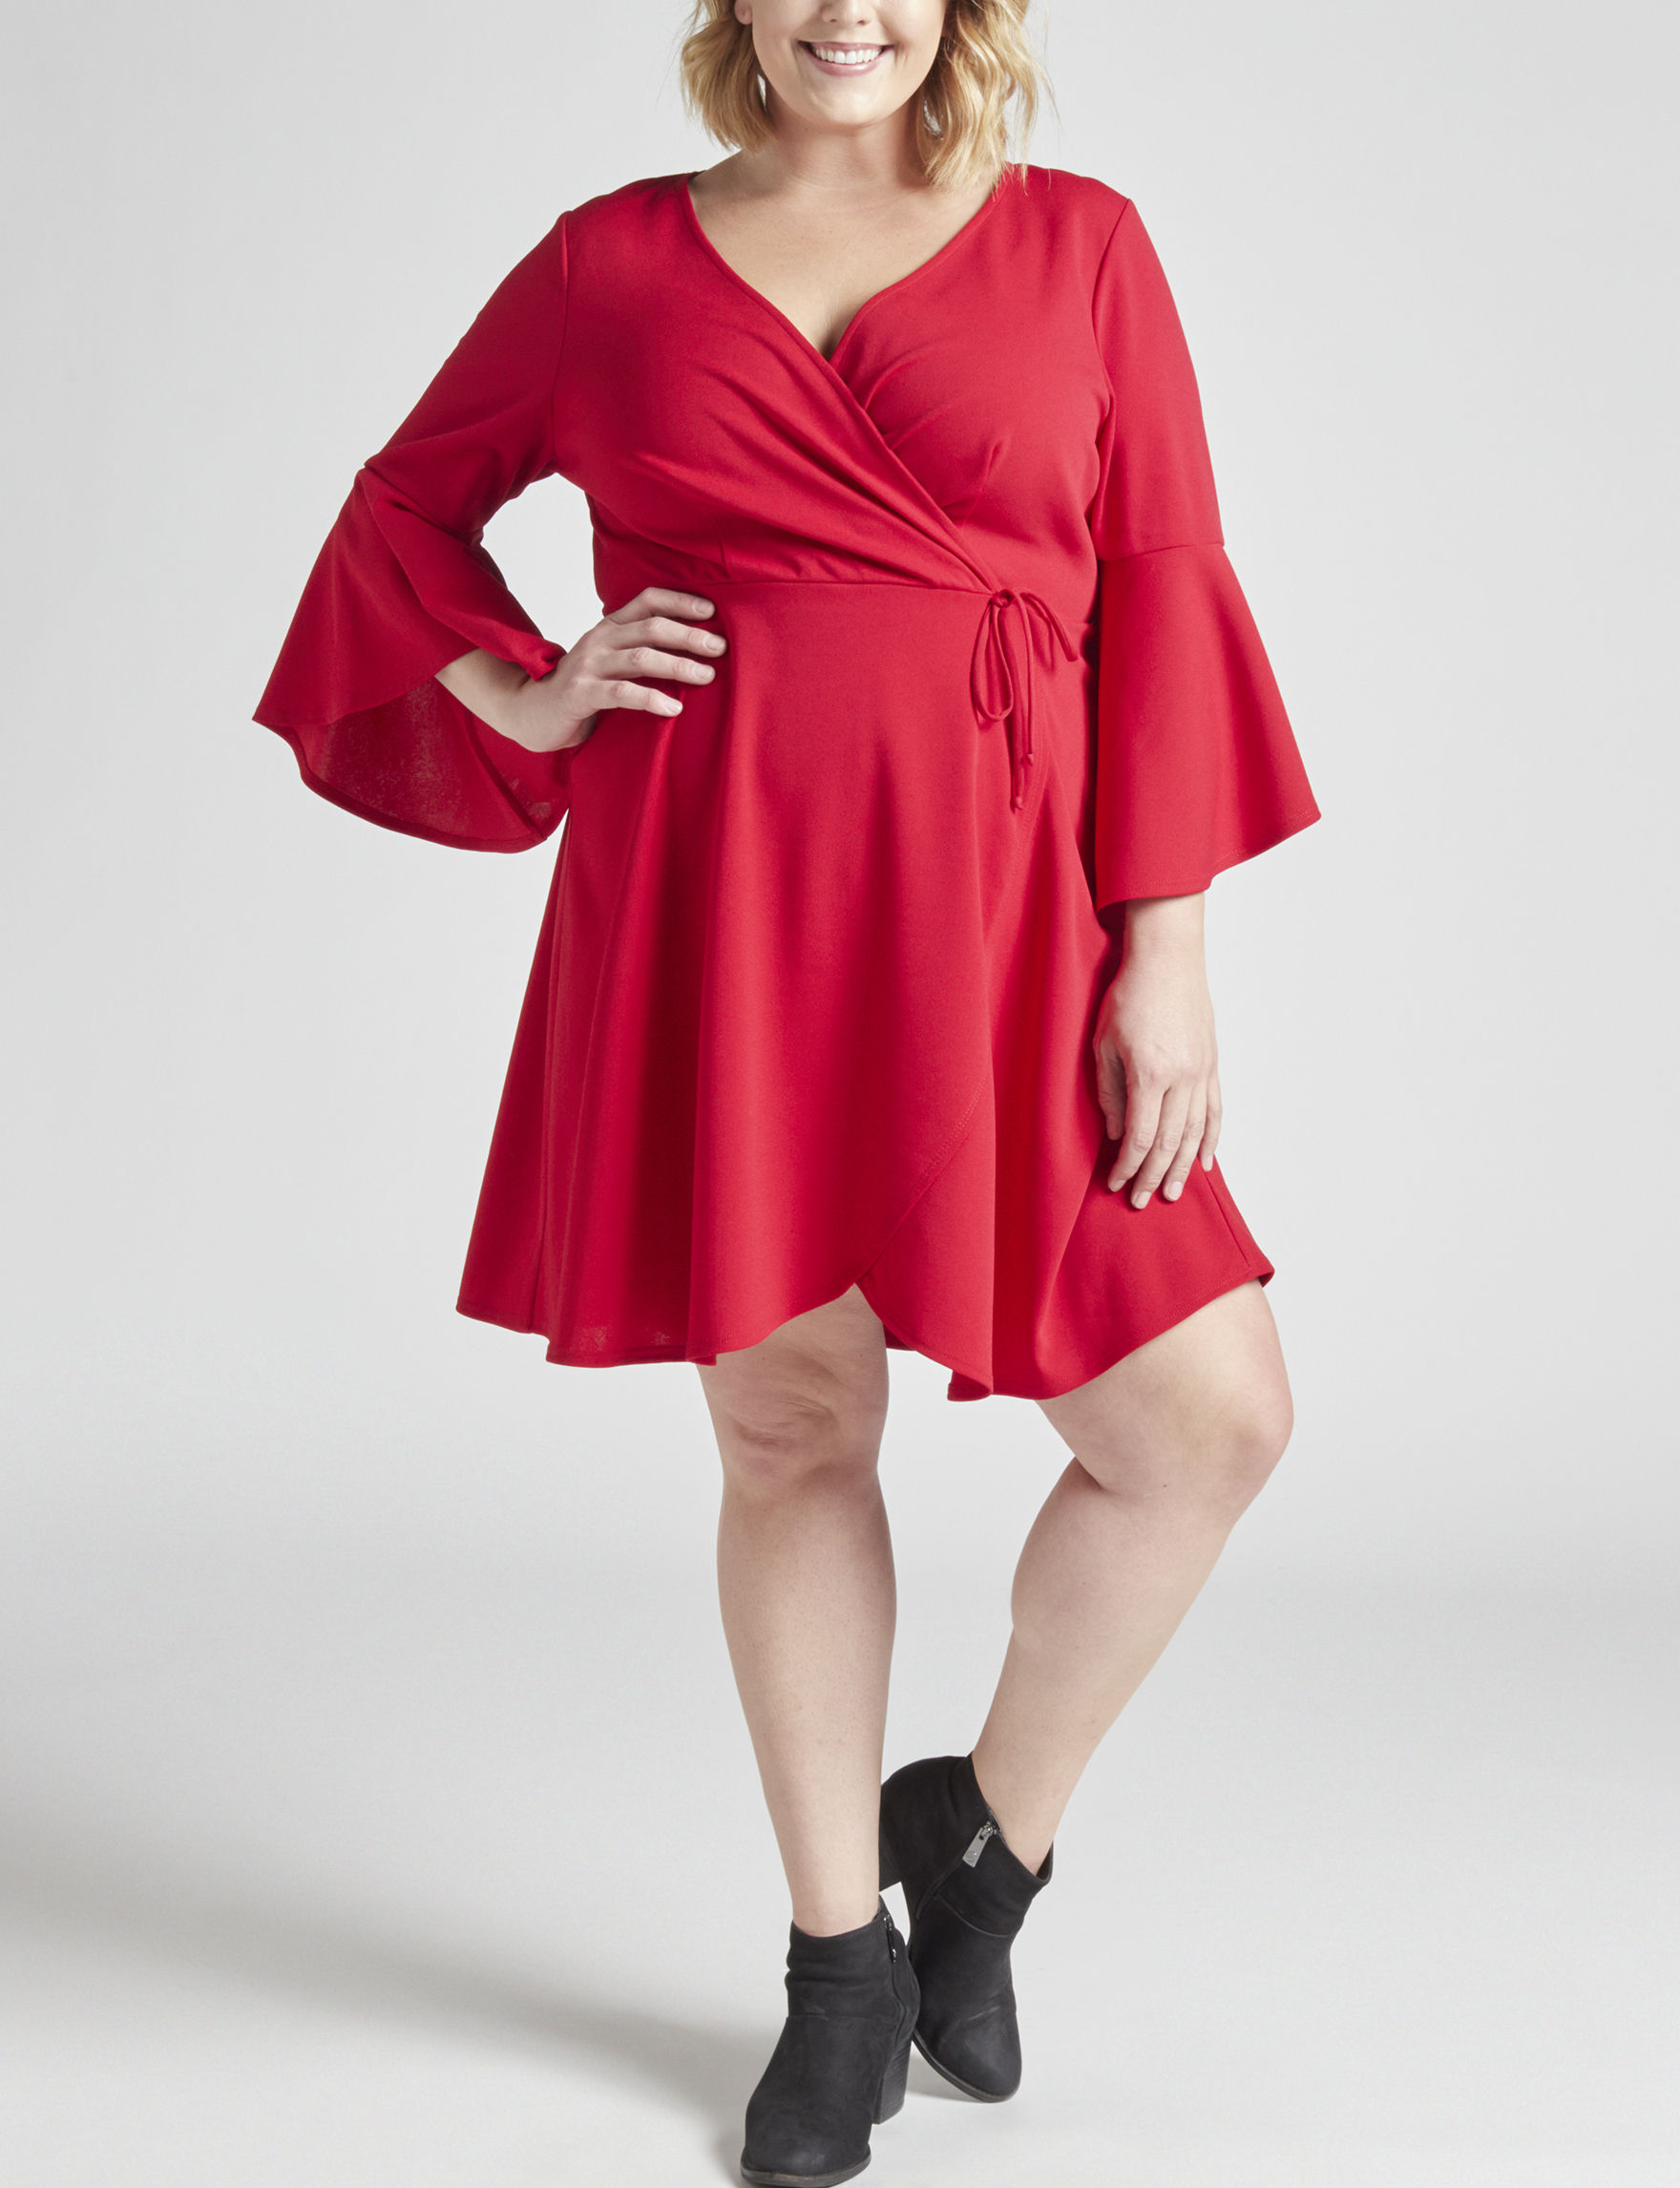 Love Squared Red Everyday & Casual Fit & Flare Dresses